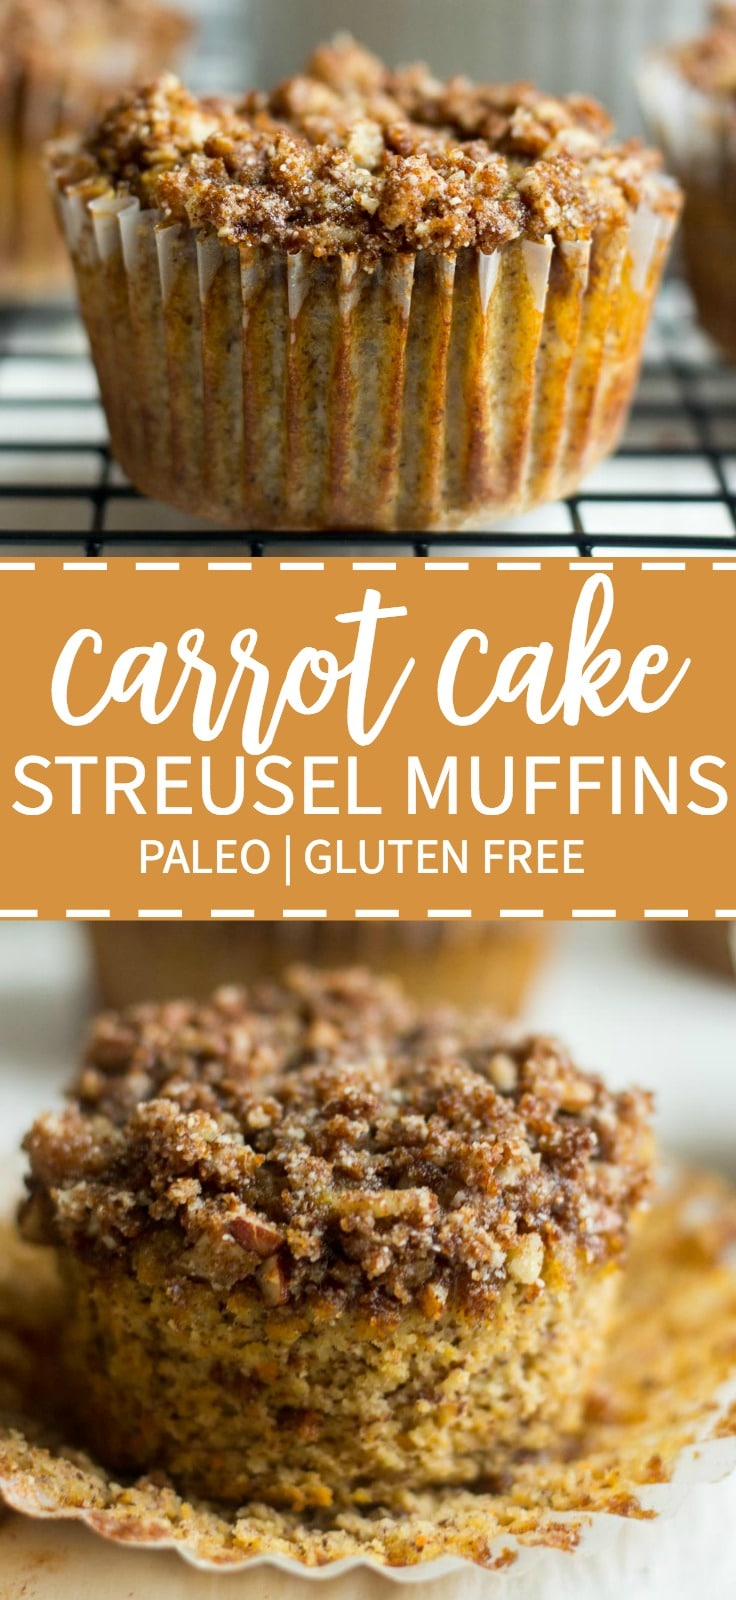 The best Easter recipe, these paleo cinnamon streusel carrot muffins have a layer of pecan and cinnamon topping piled on top. The carrot muffin base is filled with carrots and more cinnamon and sweetened with ripe bananas. This recipe is so moist and flavorful! You're friends and family won't even know it's paleo and gluten-free on Easter morning!